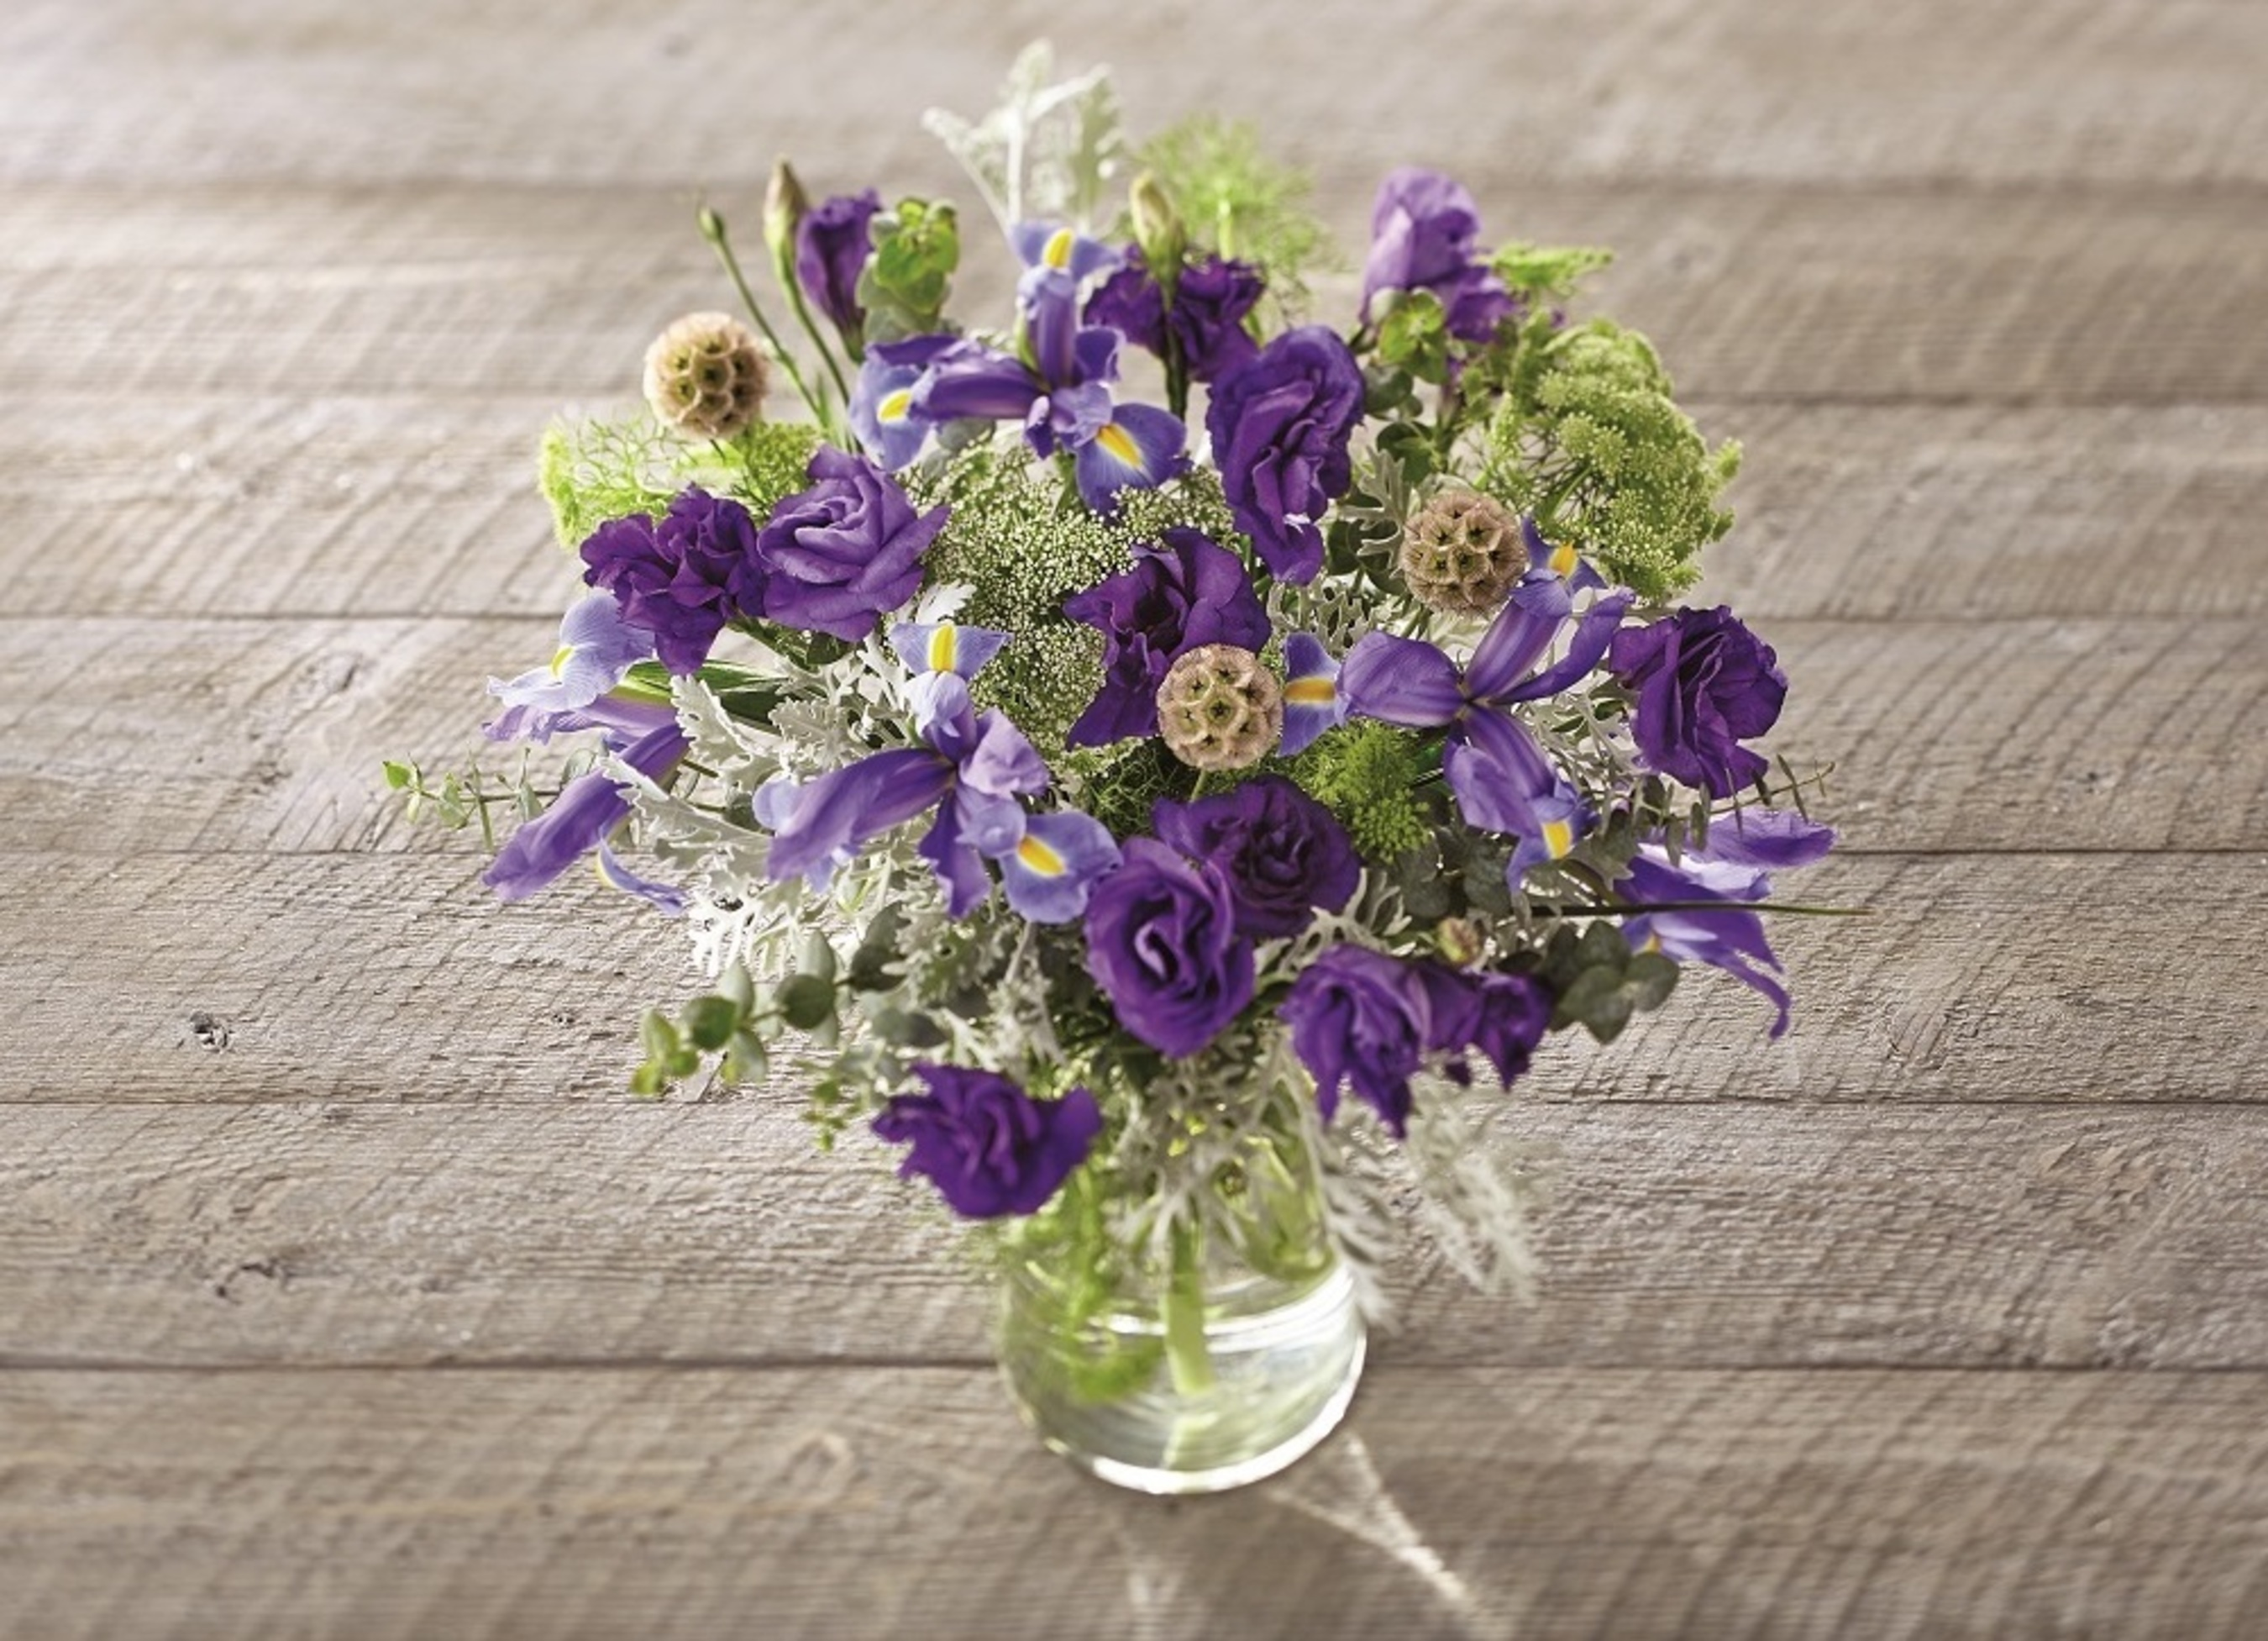 FTD's Morning Glory Bouquet from the New Homegrown Collection